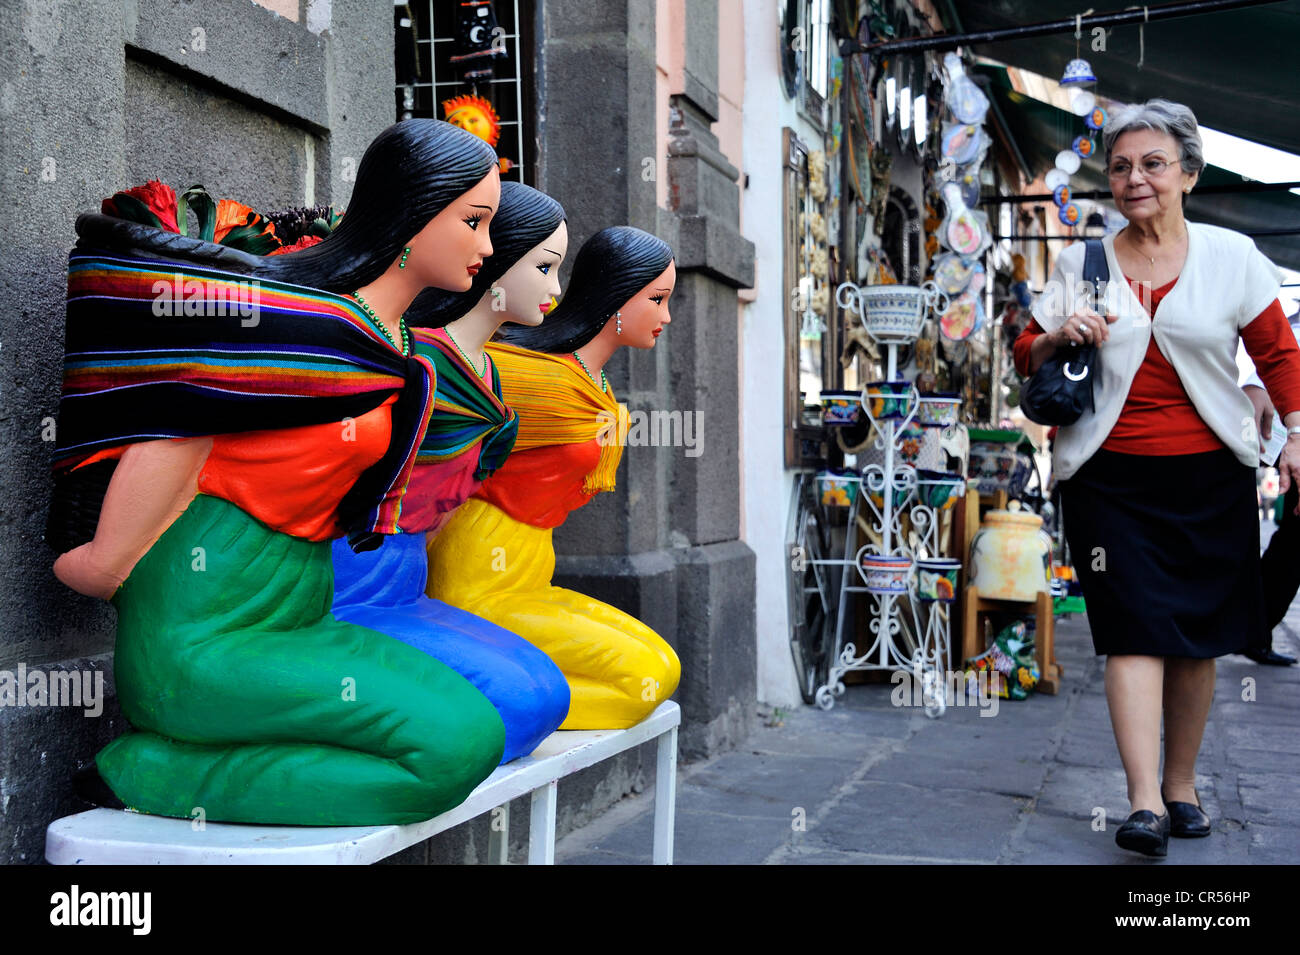 Traditional arts and crafts, kneeling figures of young indigenous women, Puebla, Mexico, Latin America, North America - Stock Image